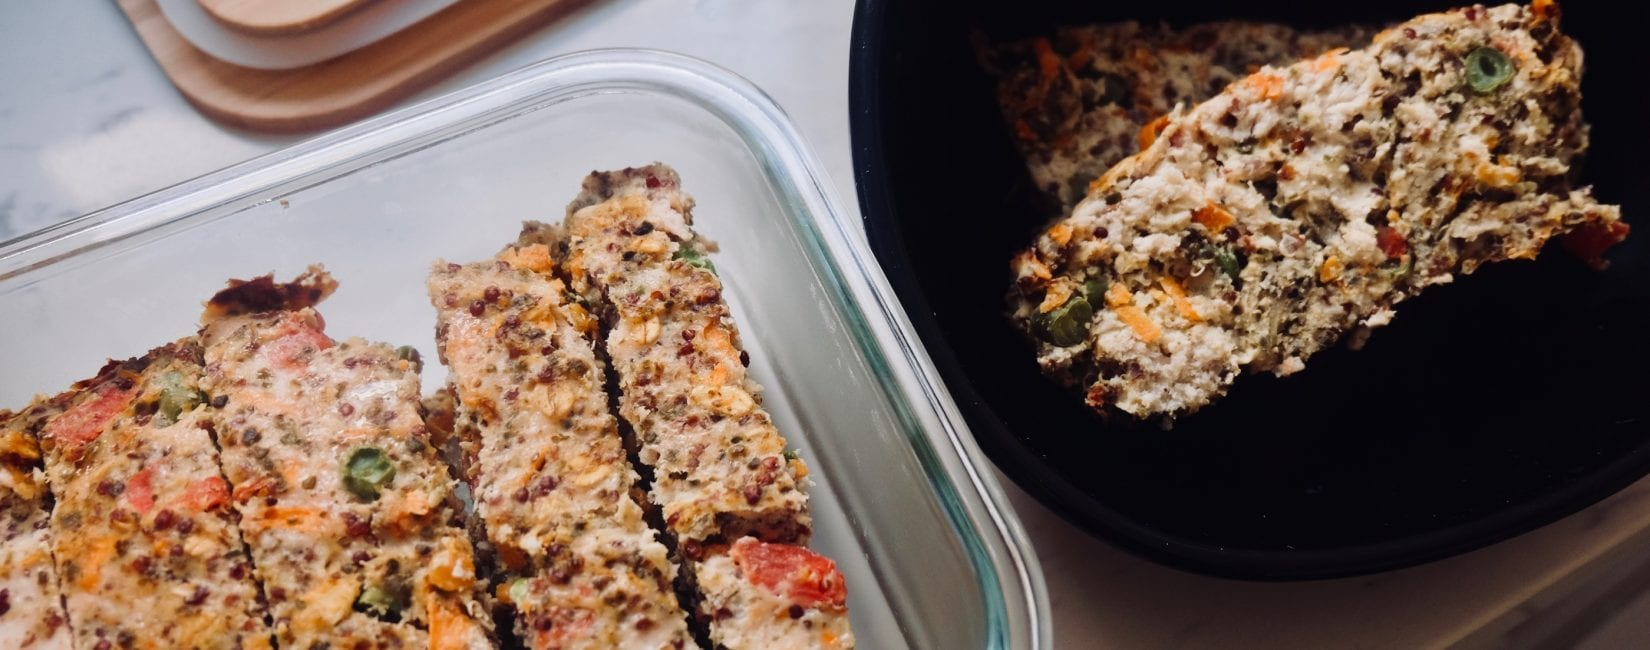 Recipe: Turkey Veggie Meatloaf for Dogs